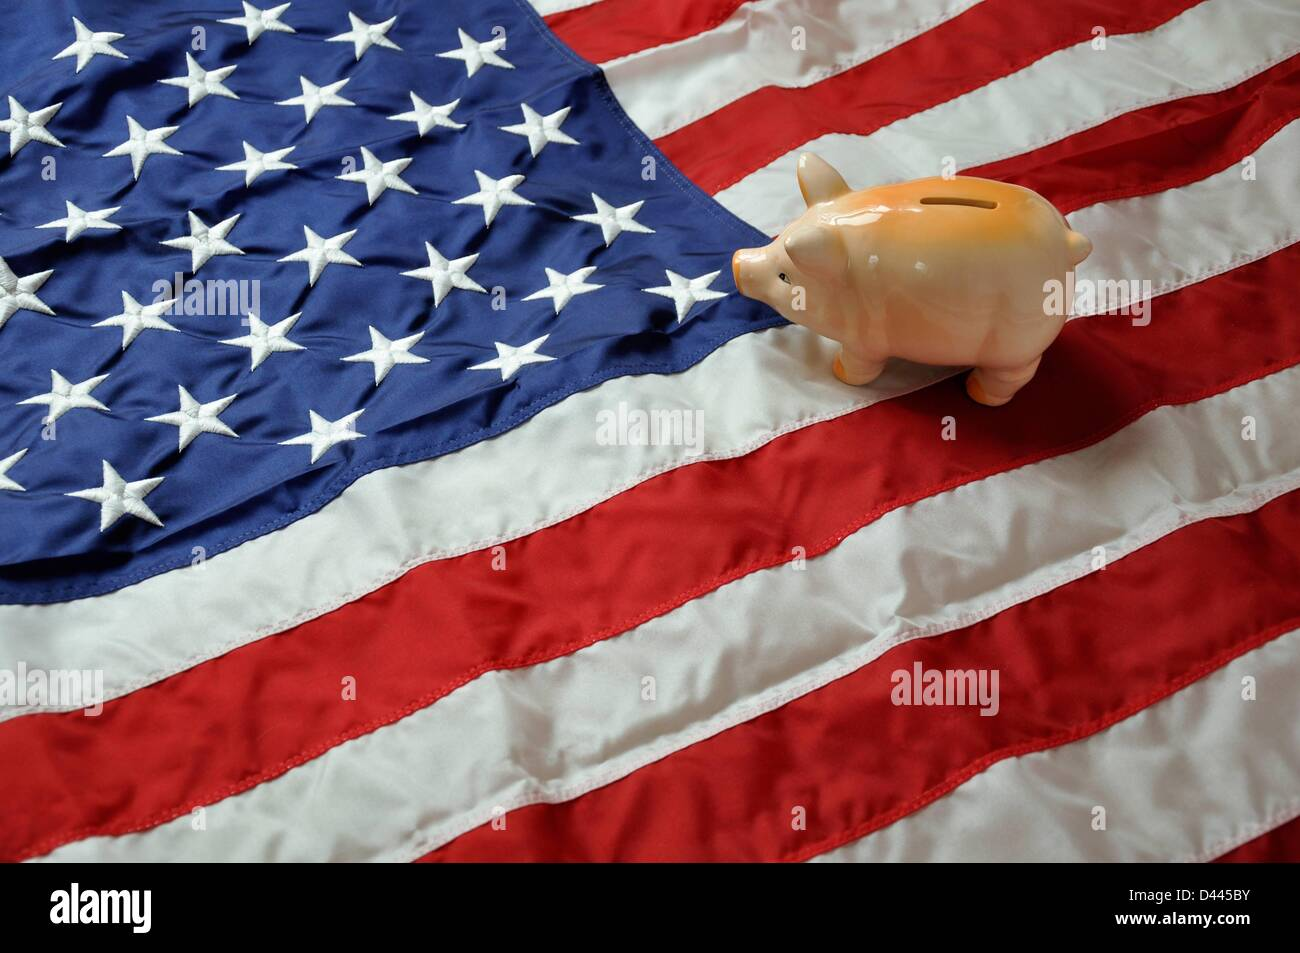 Illustration - A piggy bank is pictured on the stripes of the US flag and looks towards the stars. Photo: Berliner Stock Photo